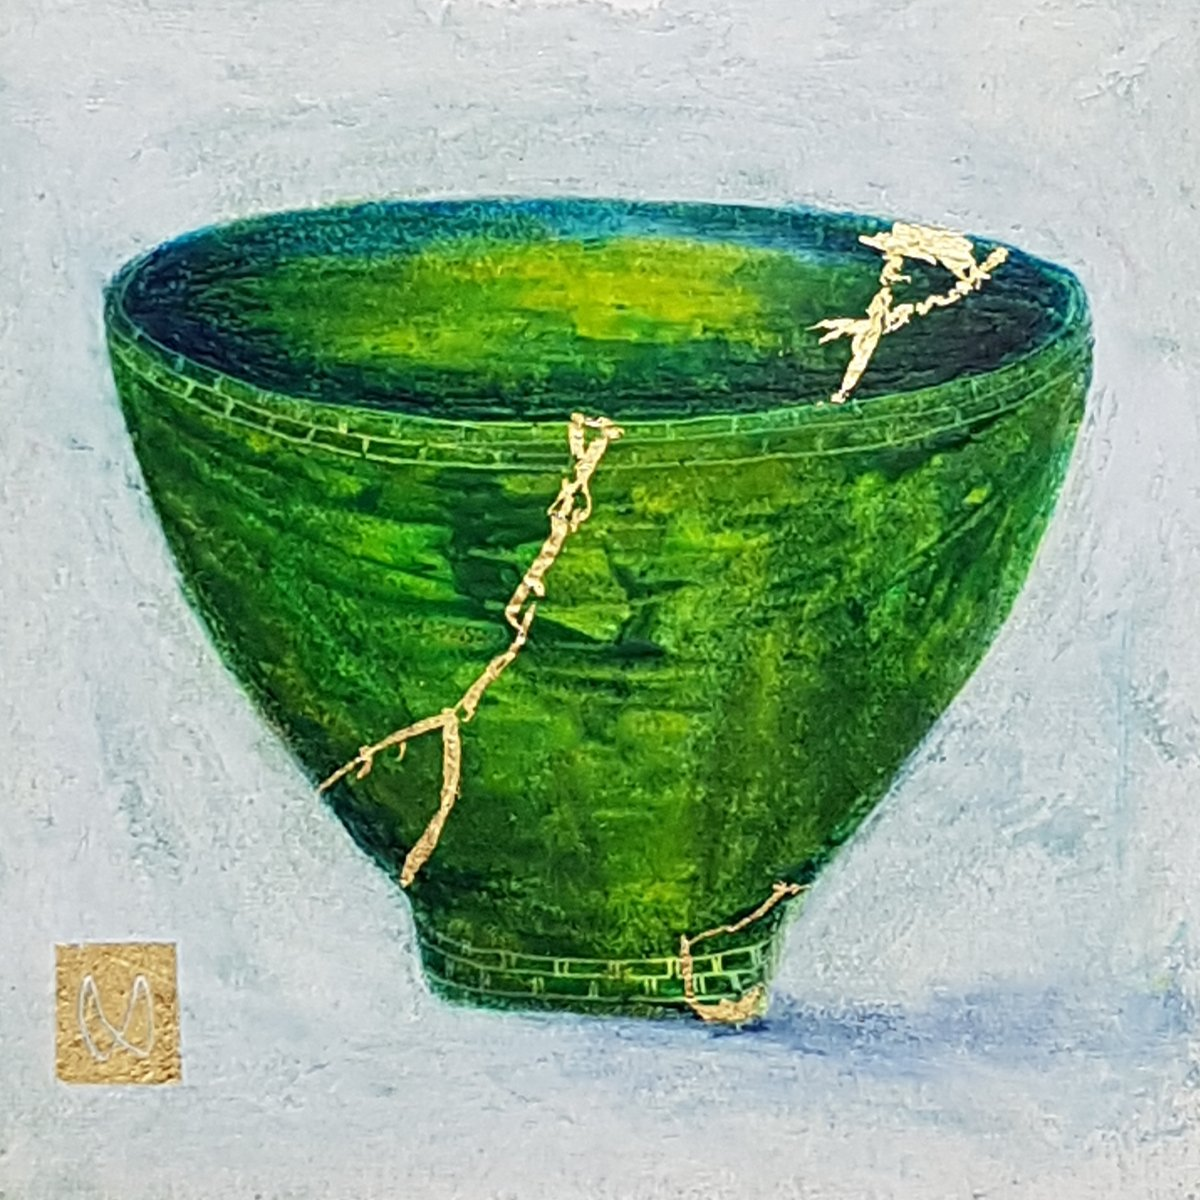 painting of Japanese kintsugi tea bowl with gold by Irish artist green